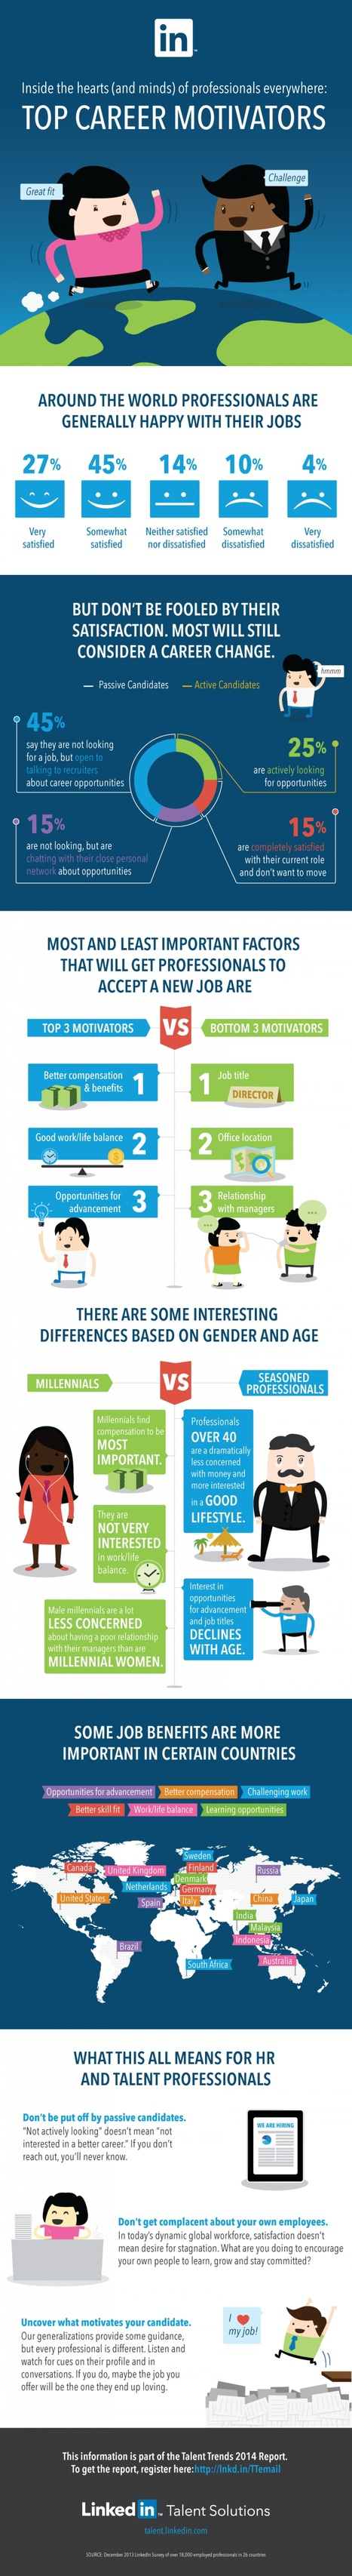 What Motivates Professionals to Switch Jobs [INFOGRAPHIC] | MarketingHits | Scoop.it